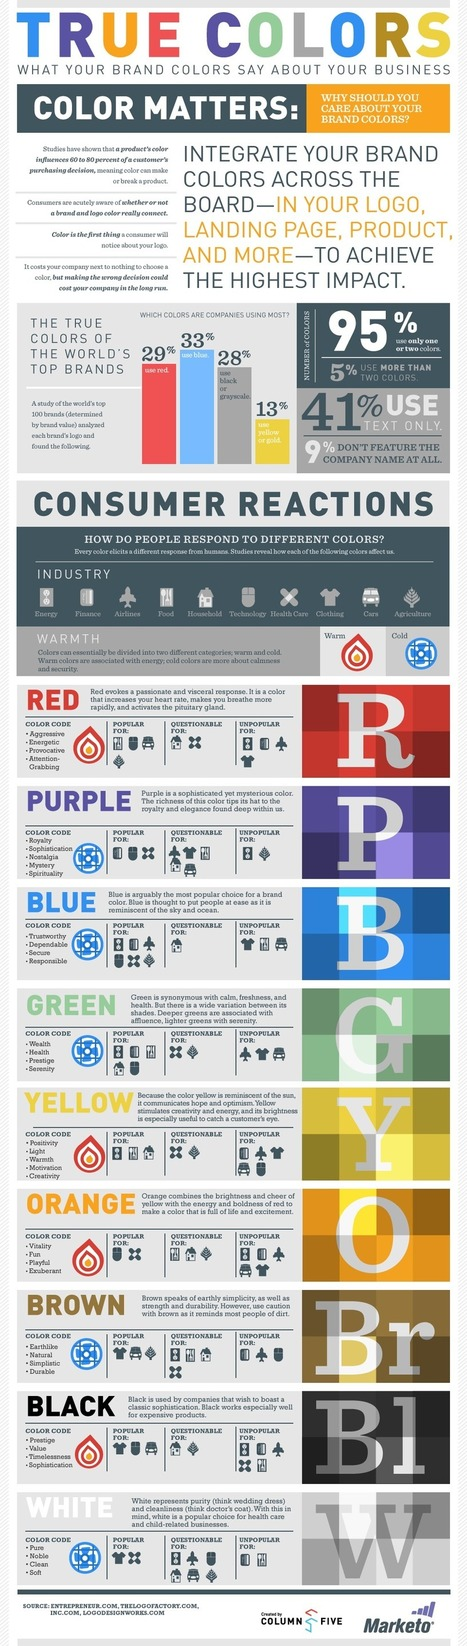 What Your Brand Colors Say About Your Business [Infographic] | Marketing Planning and Strategy | Scoop.it